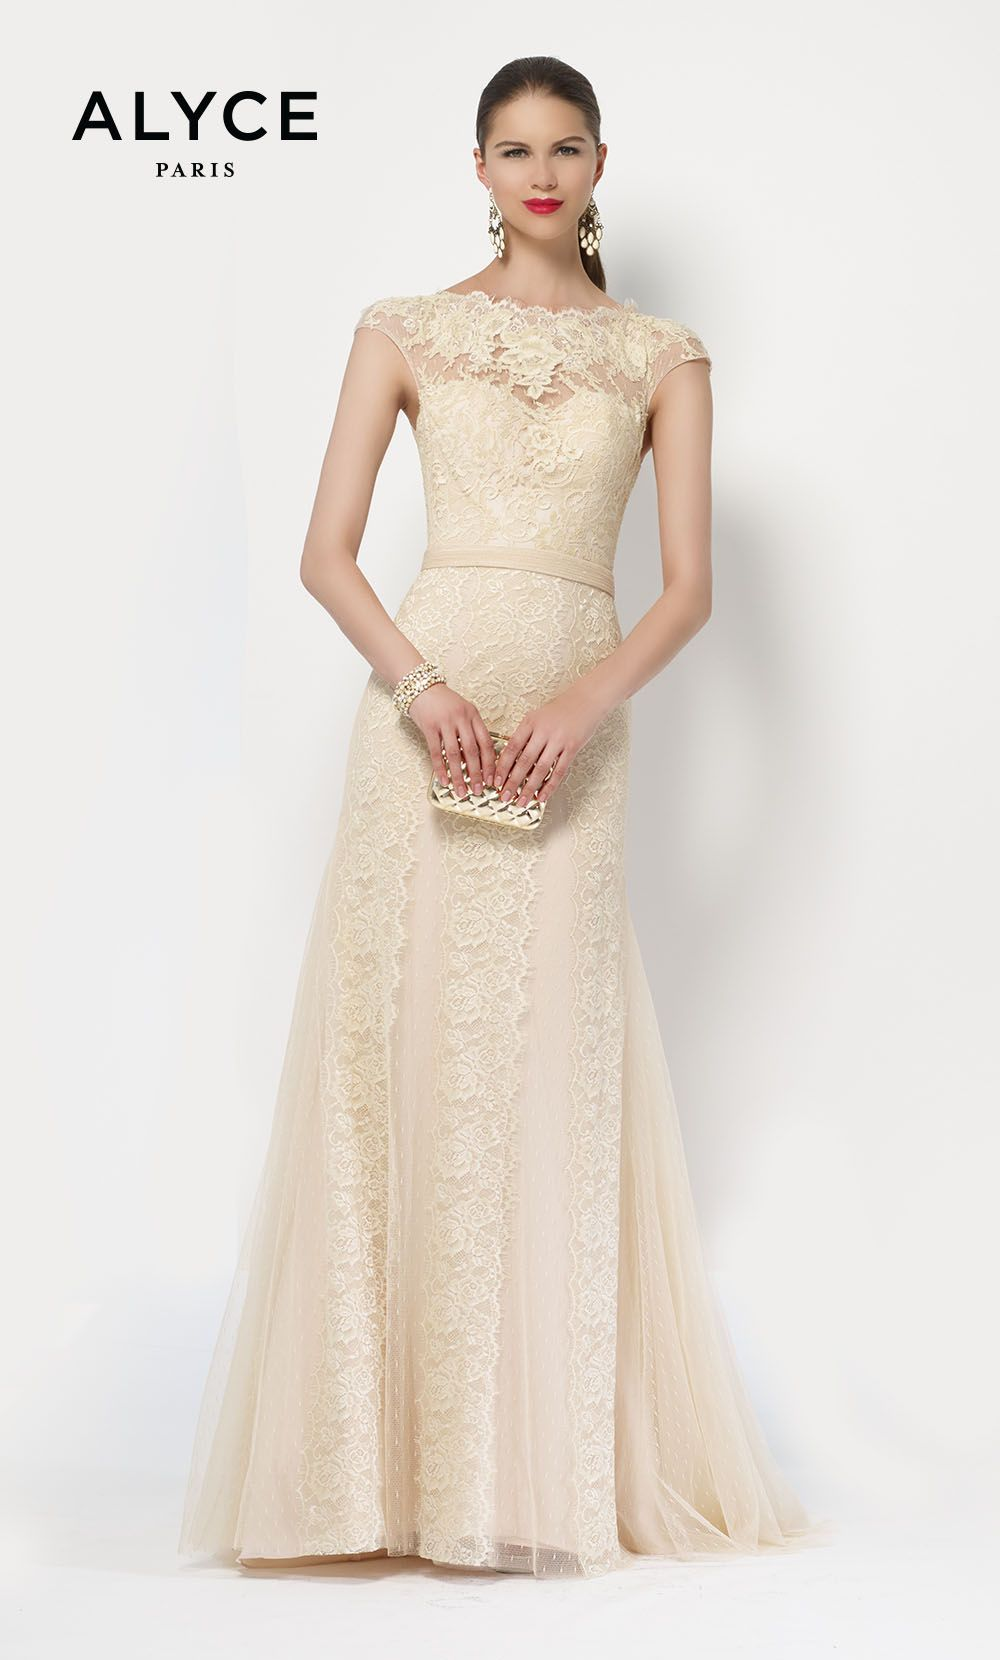 Lace wedding dress with cap sleeves sweetheart neckline  Long lace dress short capped sleeve sweetheart neckline  Winter